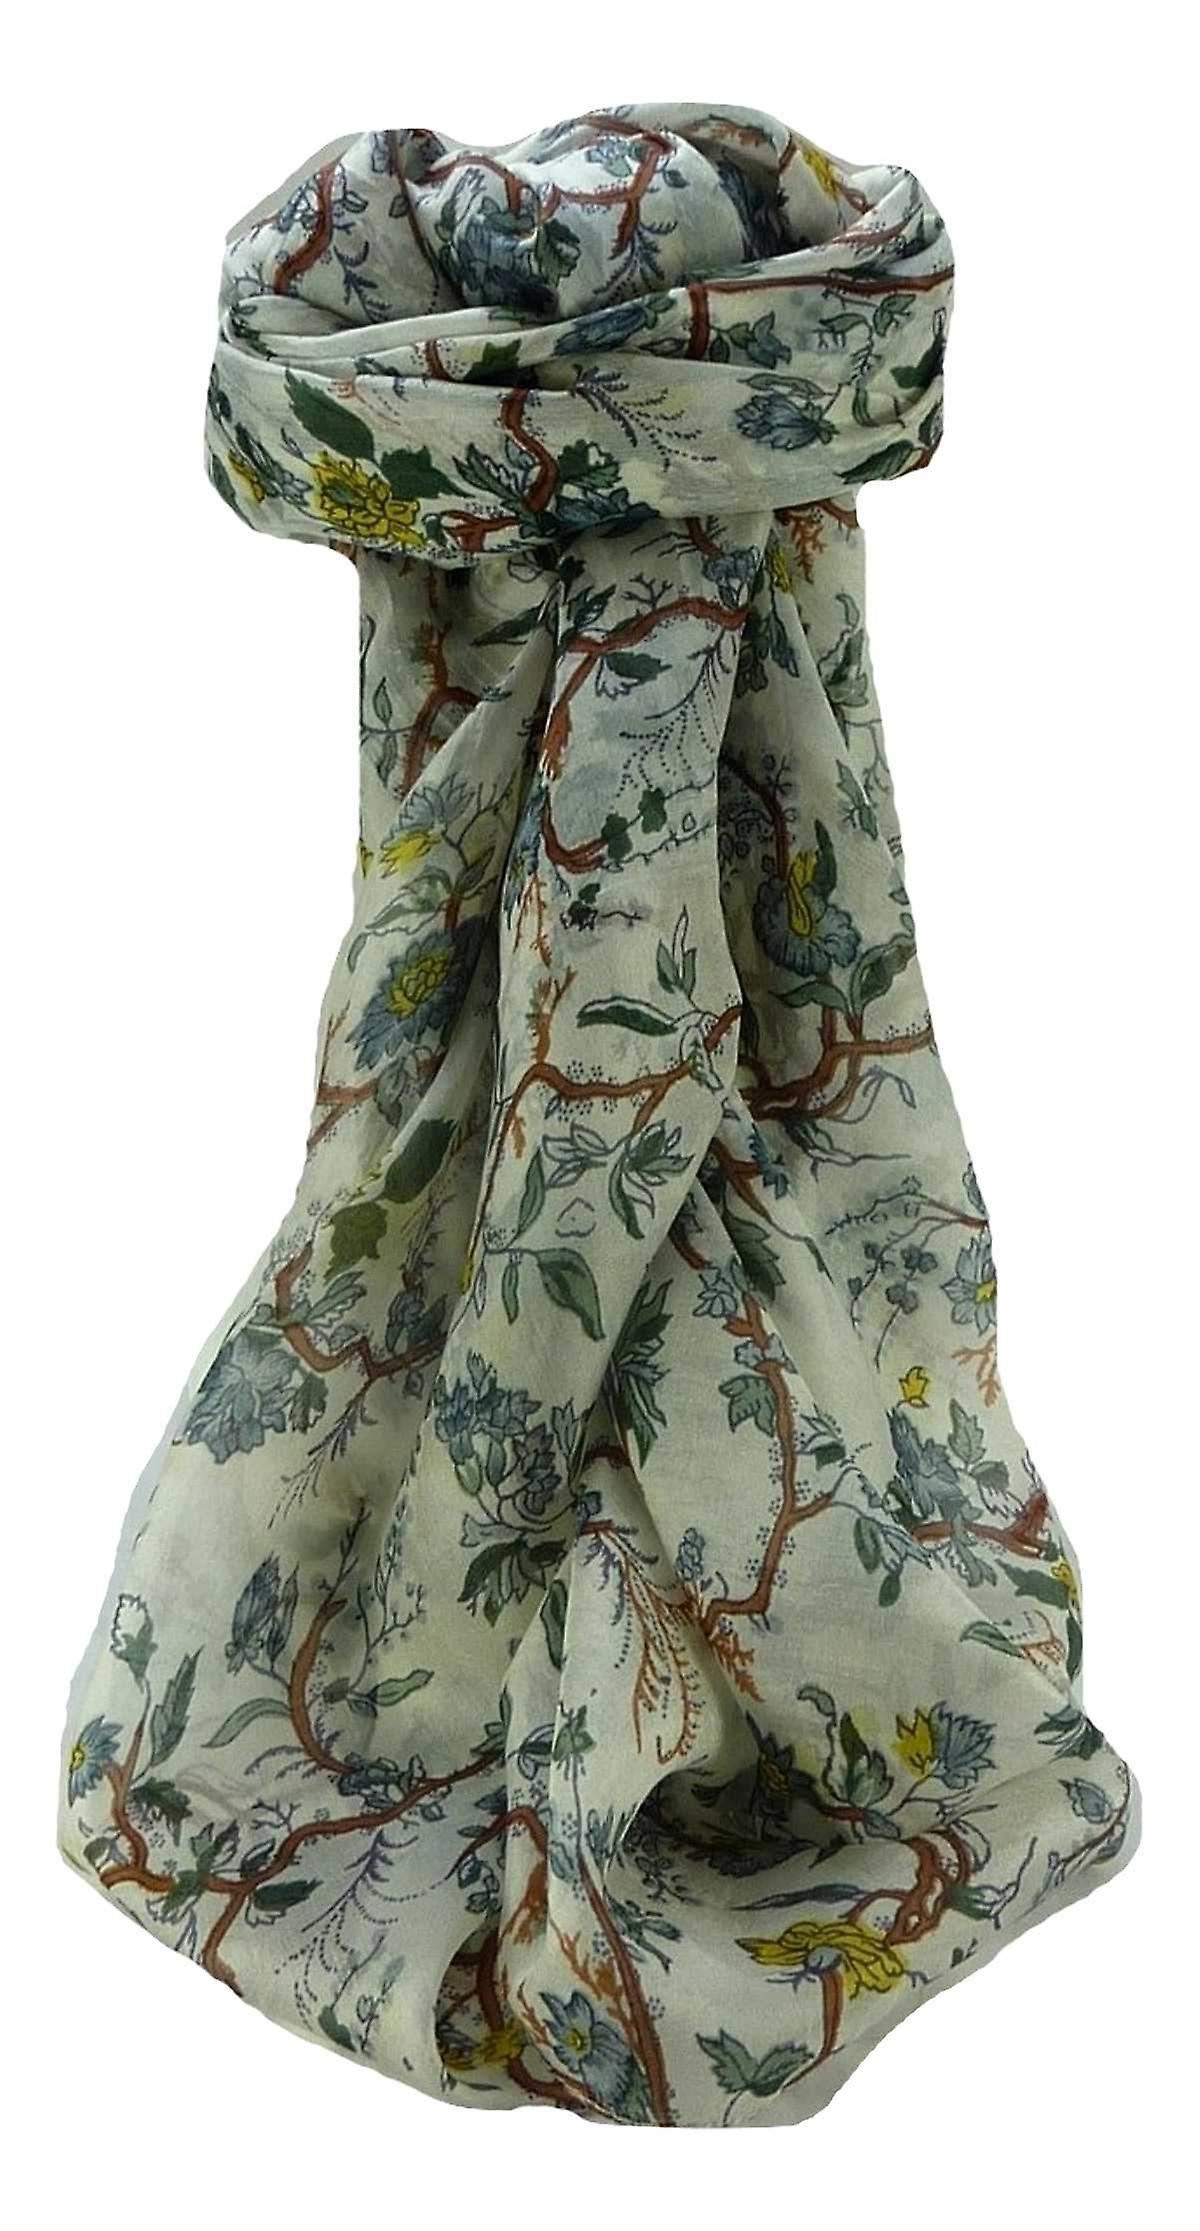 Mulberry Silk Contemporary Square Scarf Floral F213 by Pashmina & Silk